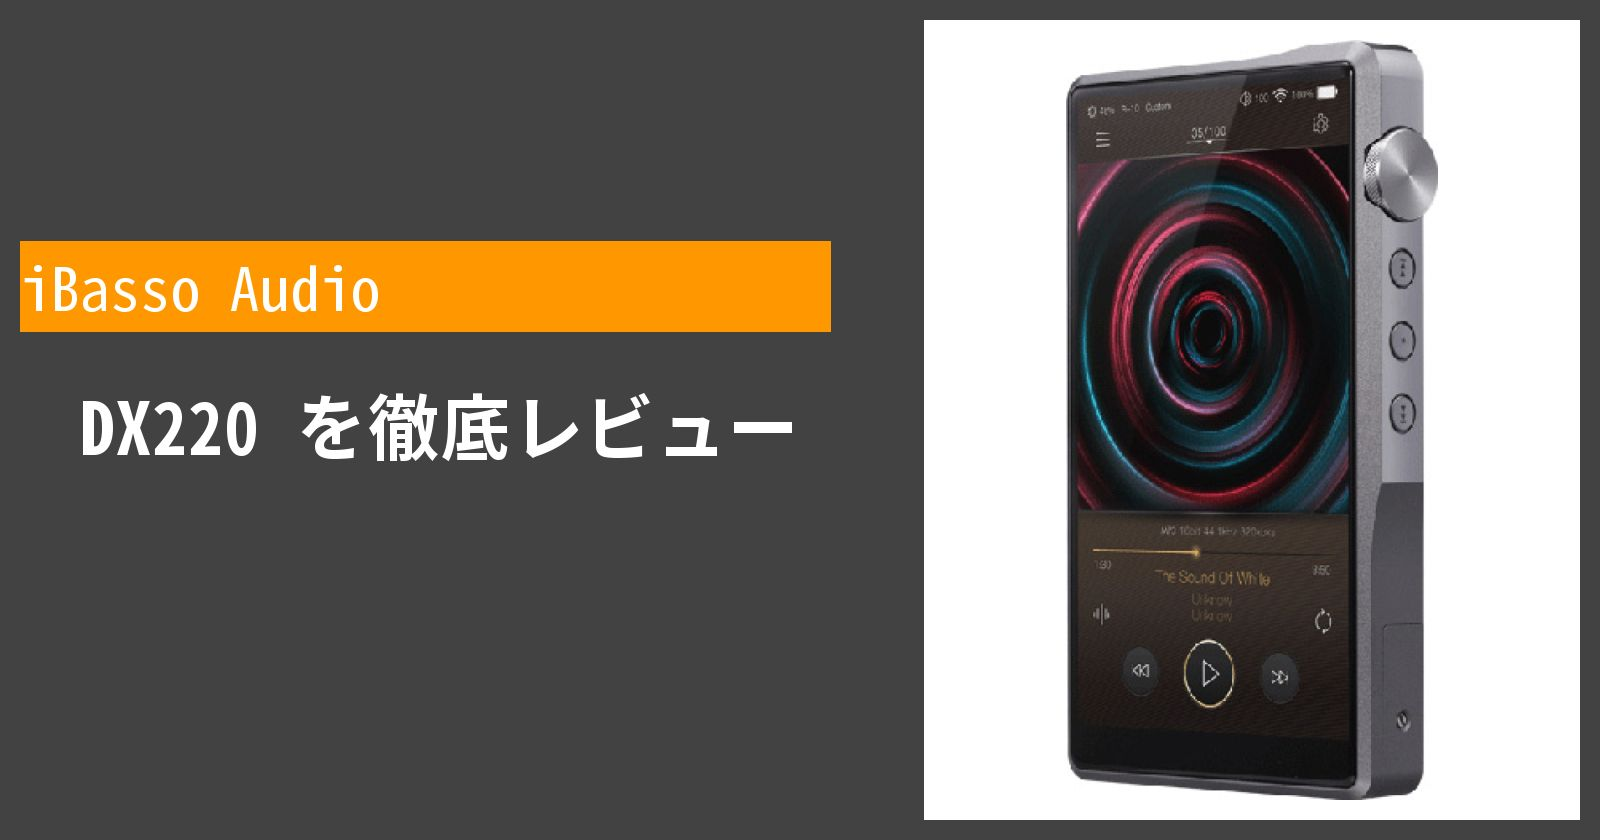 DX220を徹底評価